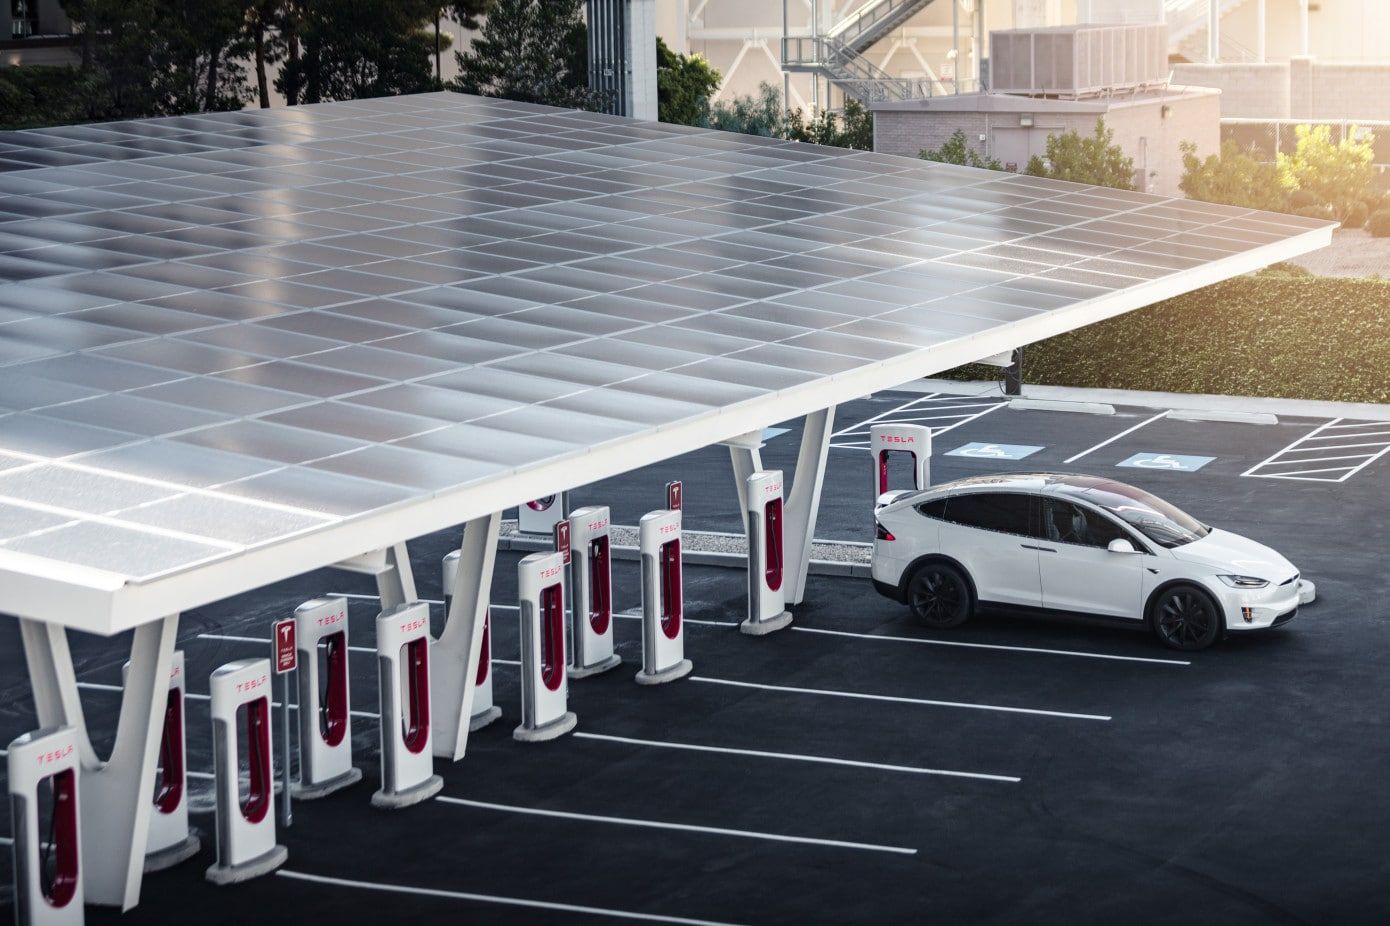 How Many v3 Superchargers Are There In The United States? 1